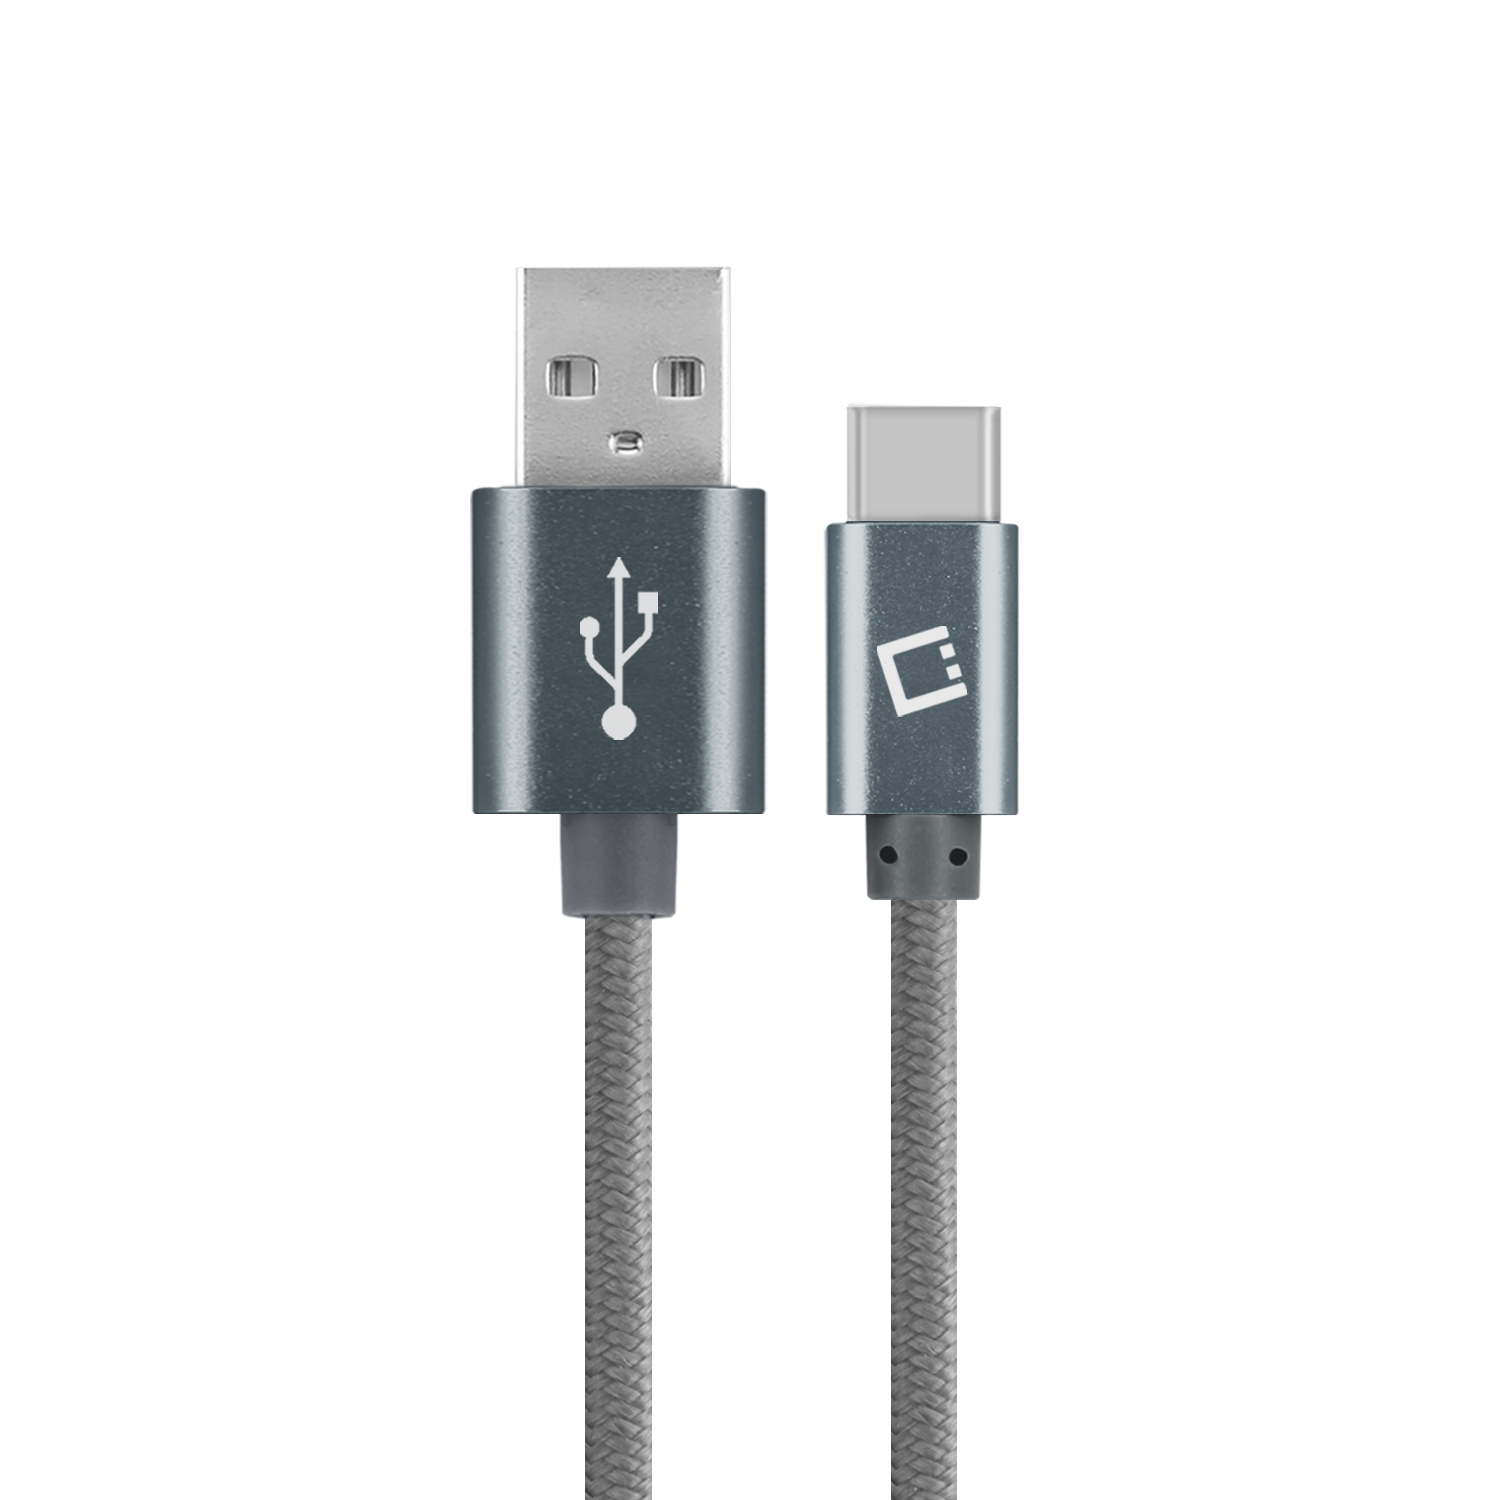 Samsung Galaxy S9 Plus USB Type-C To Type-A Braided Data Power Cable Grey 4ft Braided